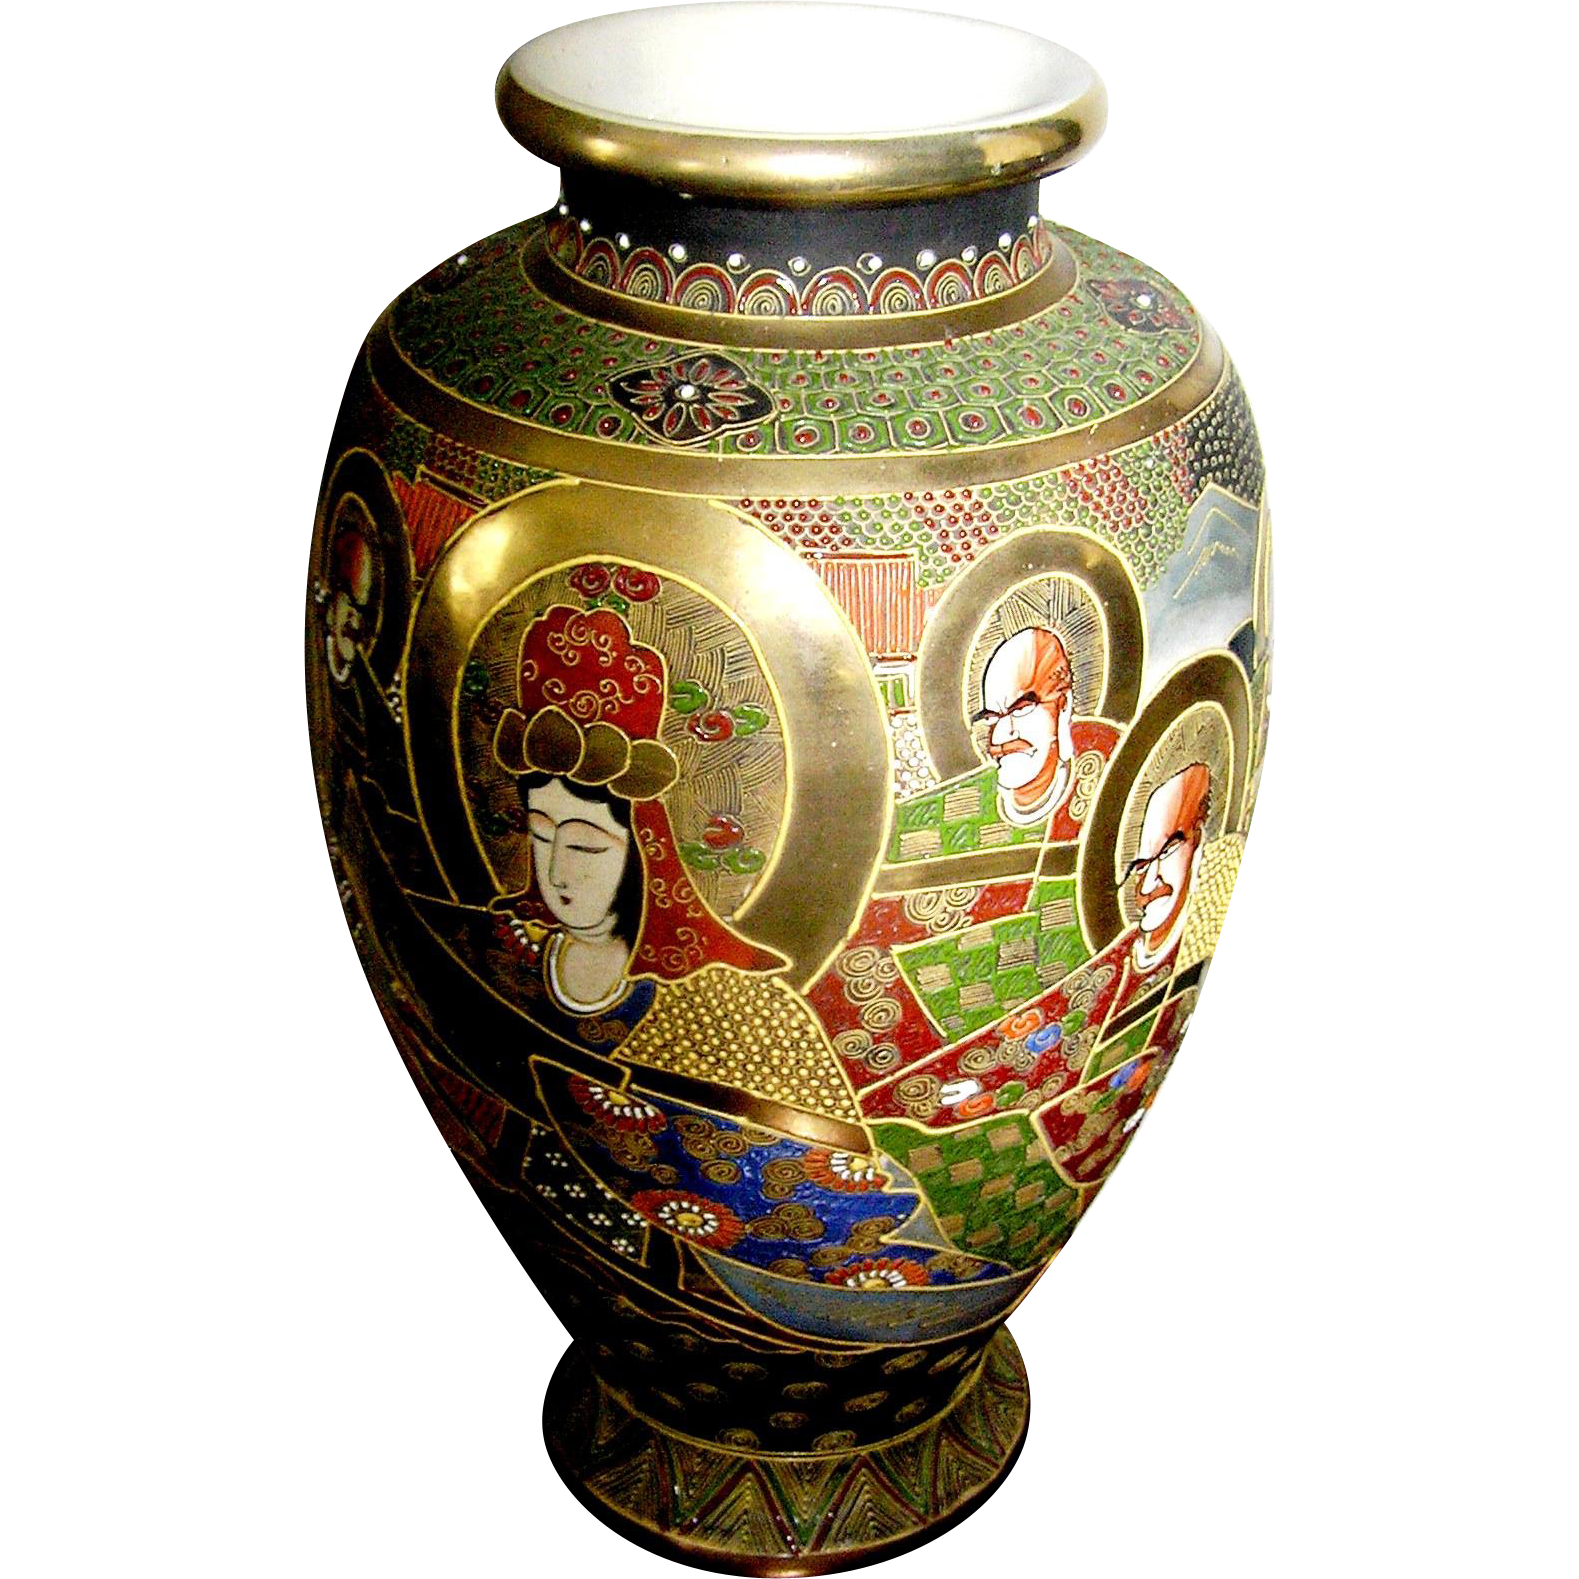 Huge Vintage Satsuma Vase Gold Halos Around Ahrats Hand Painted From Eddy On Ruby Lane